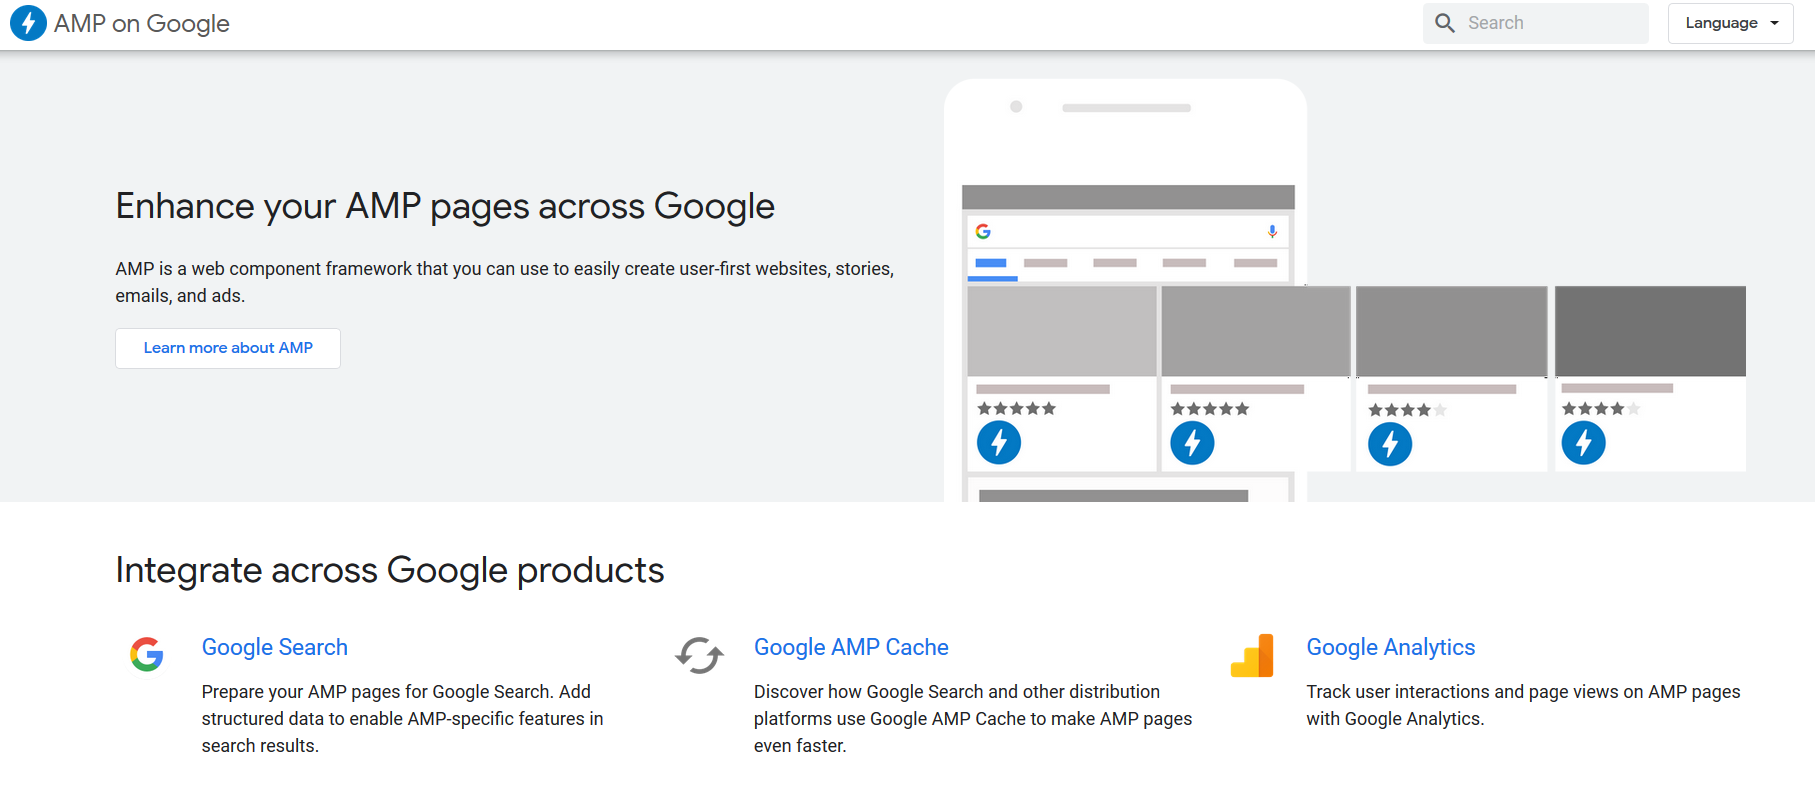 AMP on Google page screenshot